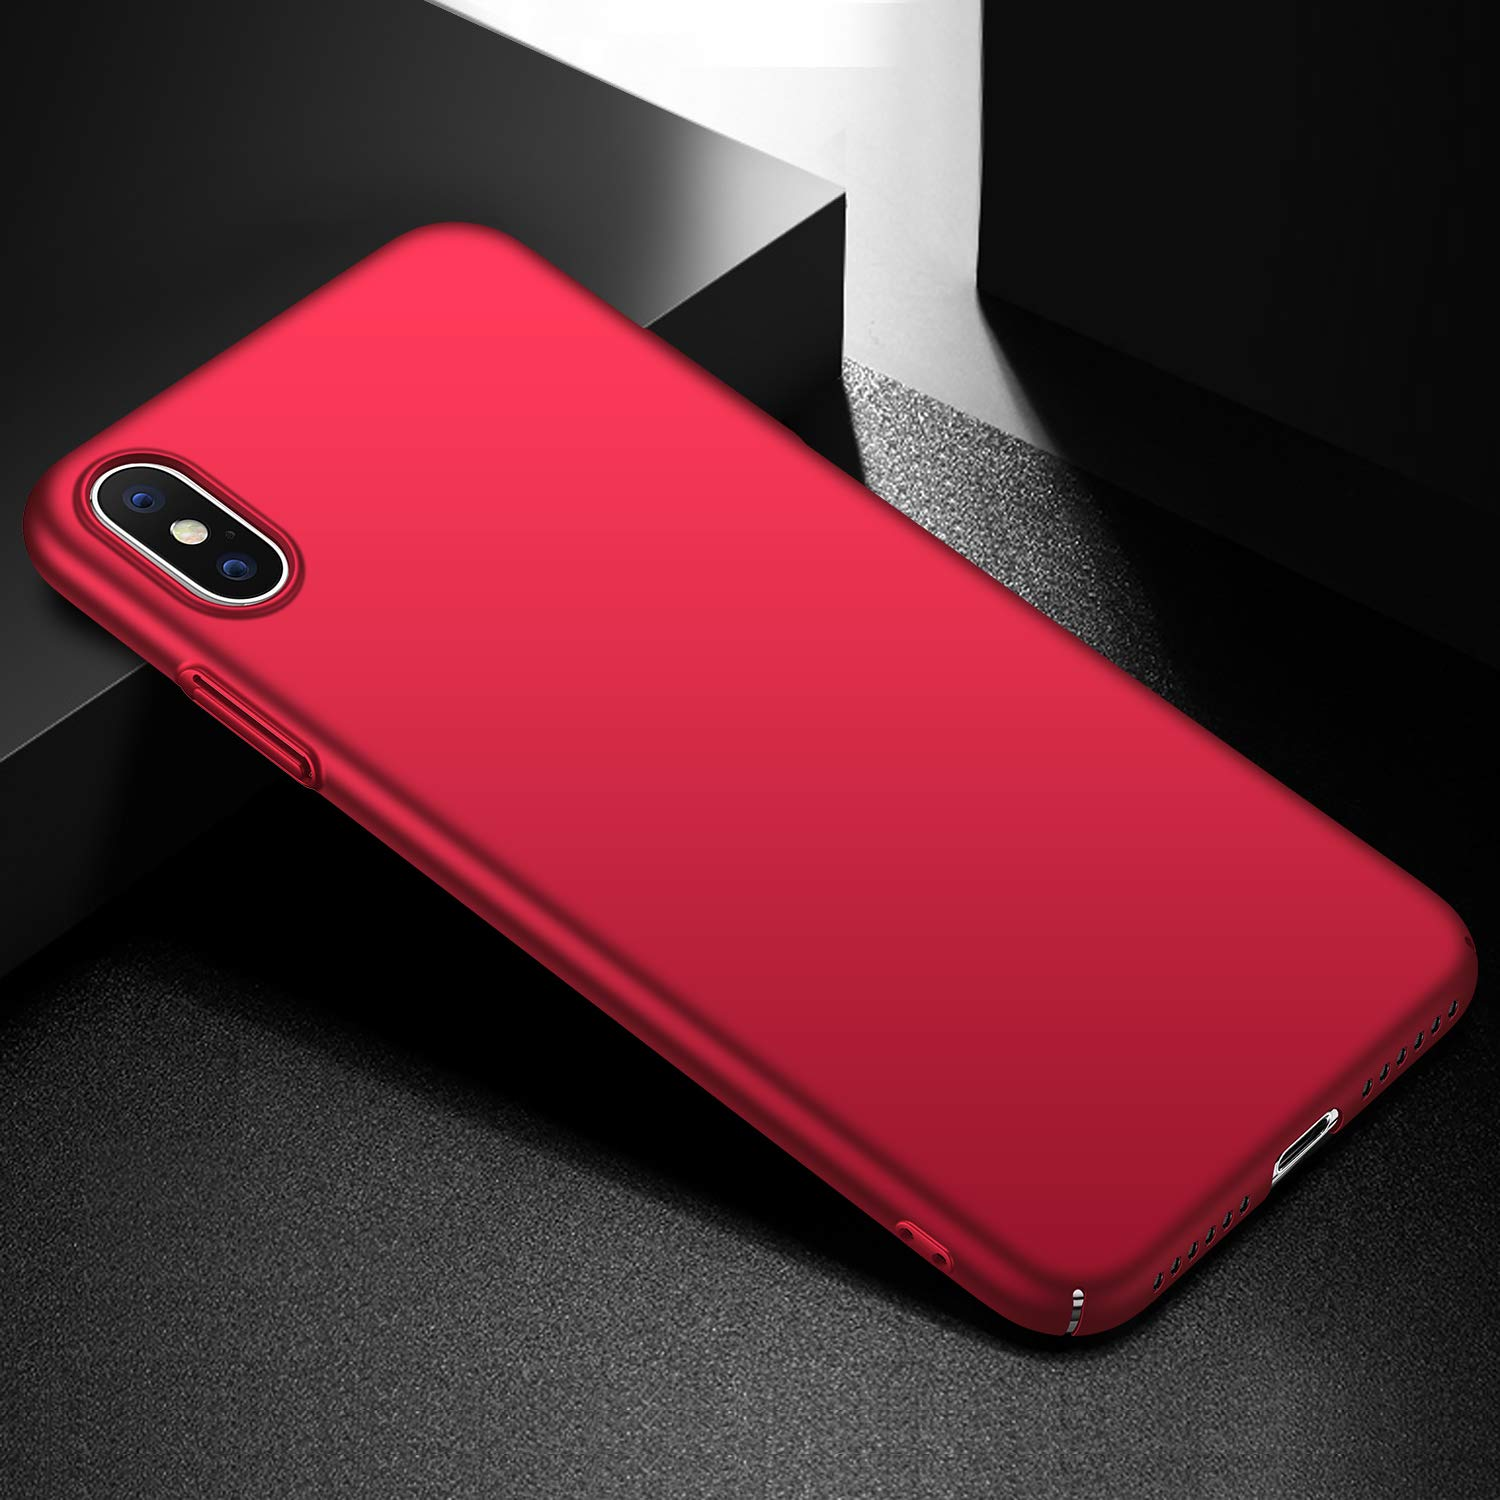 Smooth Red Arkour for iPhone Xs Max Case Minimalist Ultra Thin Slim Fit Cover with Smooth Matte Surface Hard Cases for iPhone Xs Max 6.5 inch